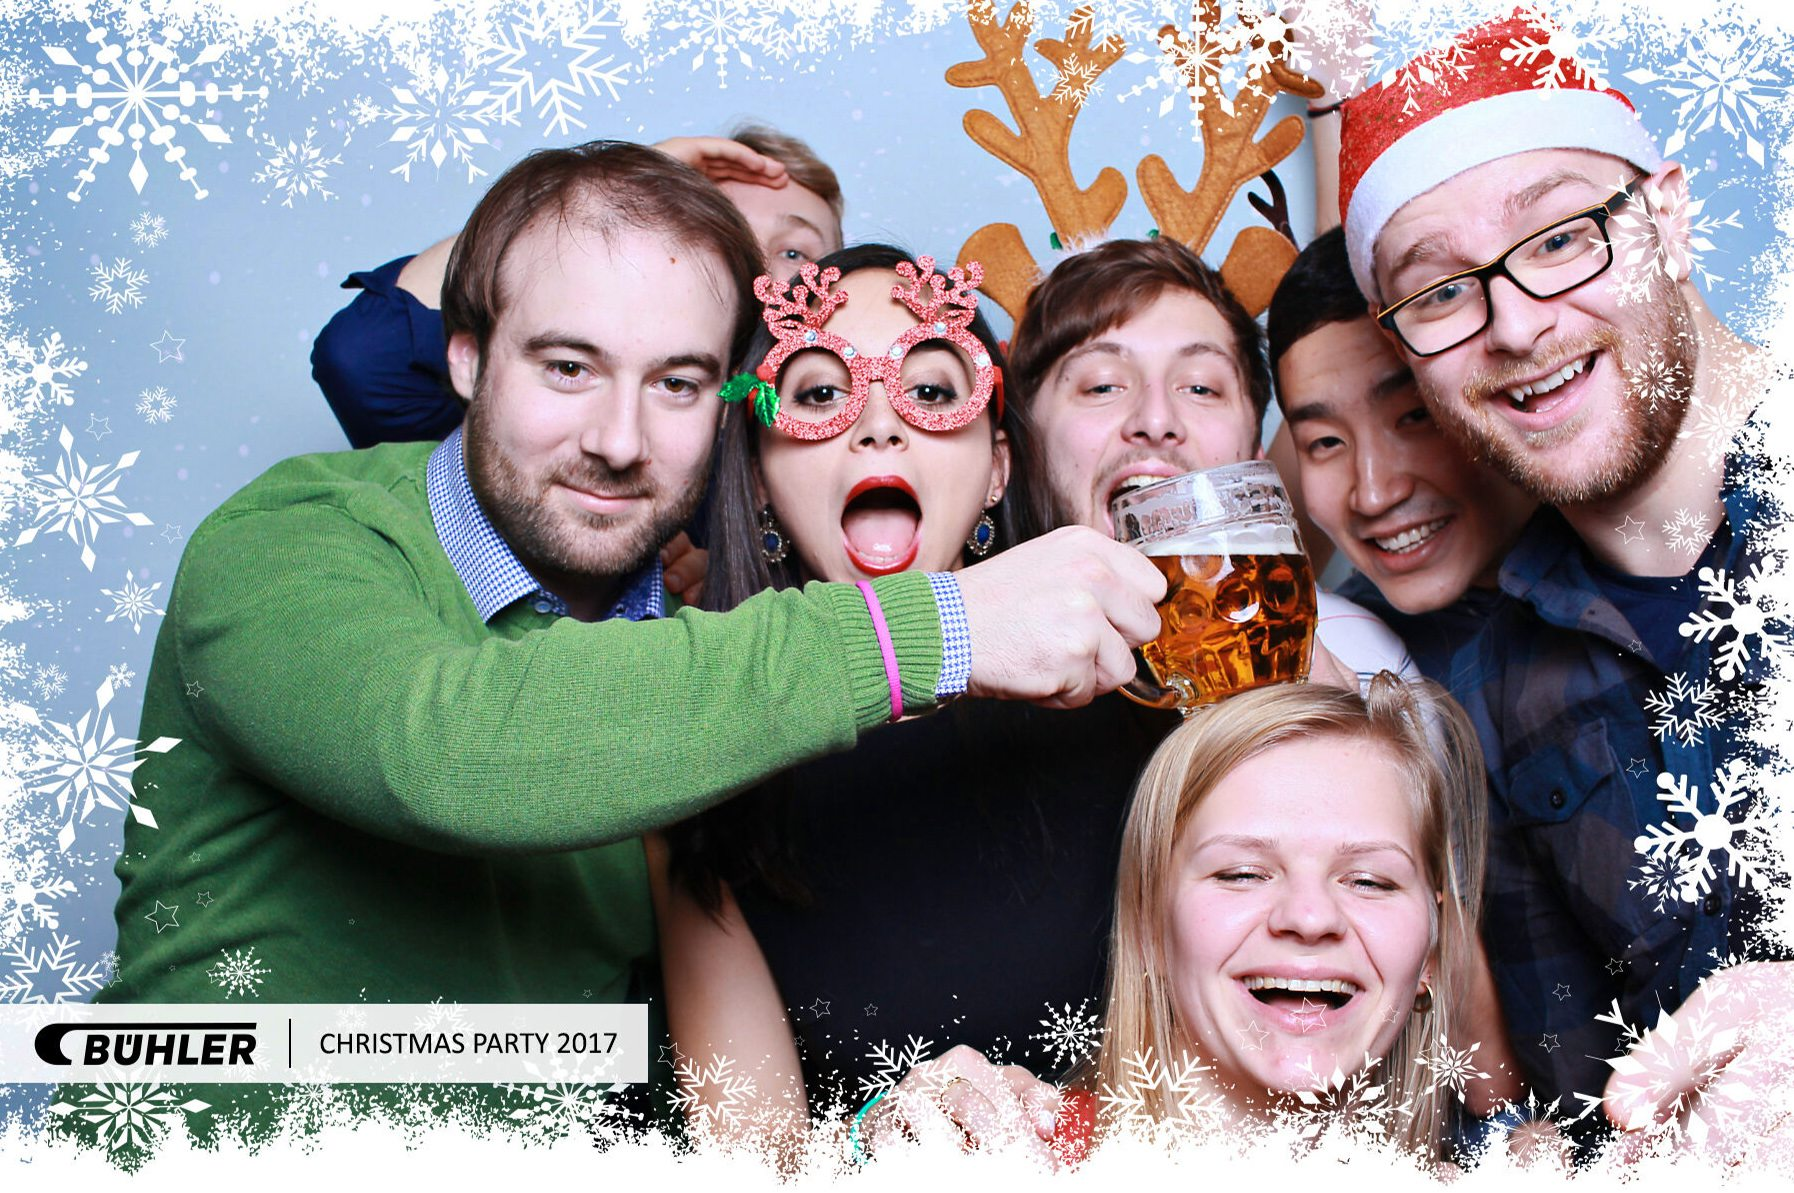 fotokoutek-buhler-christmas-party-15-12-2017-372119